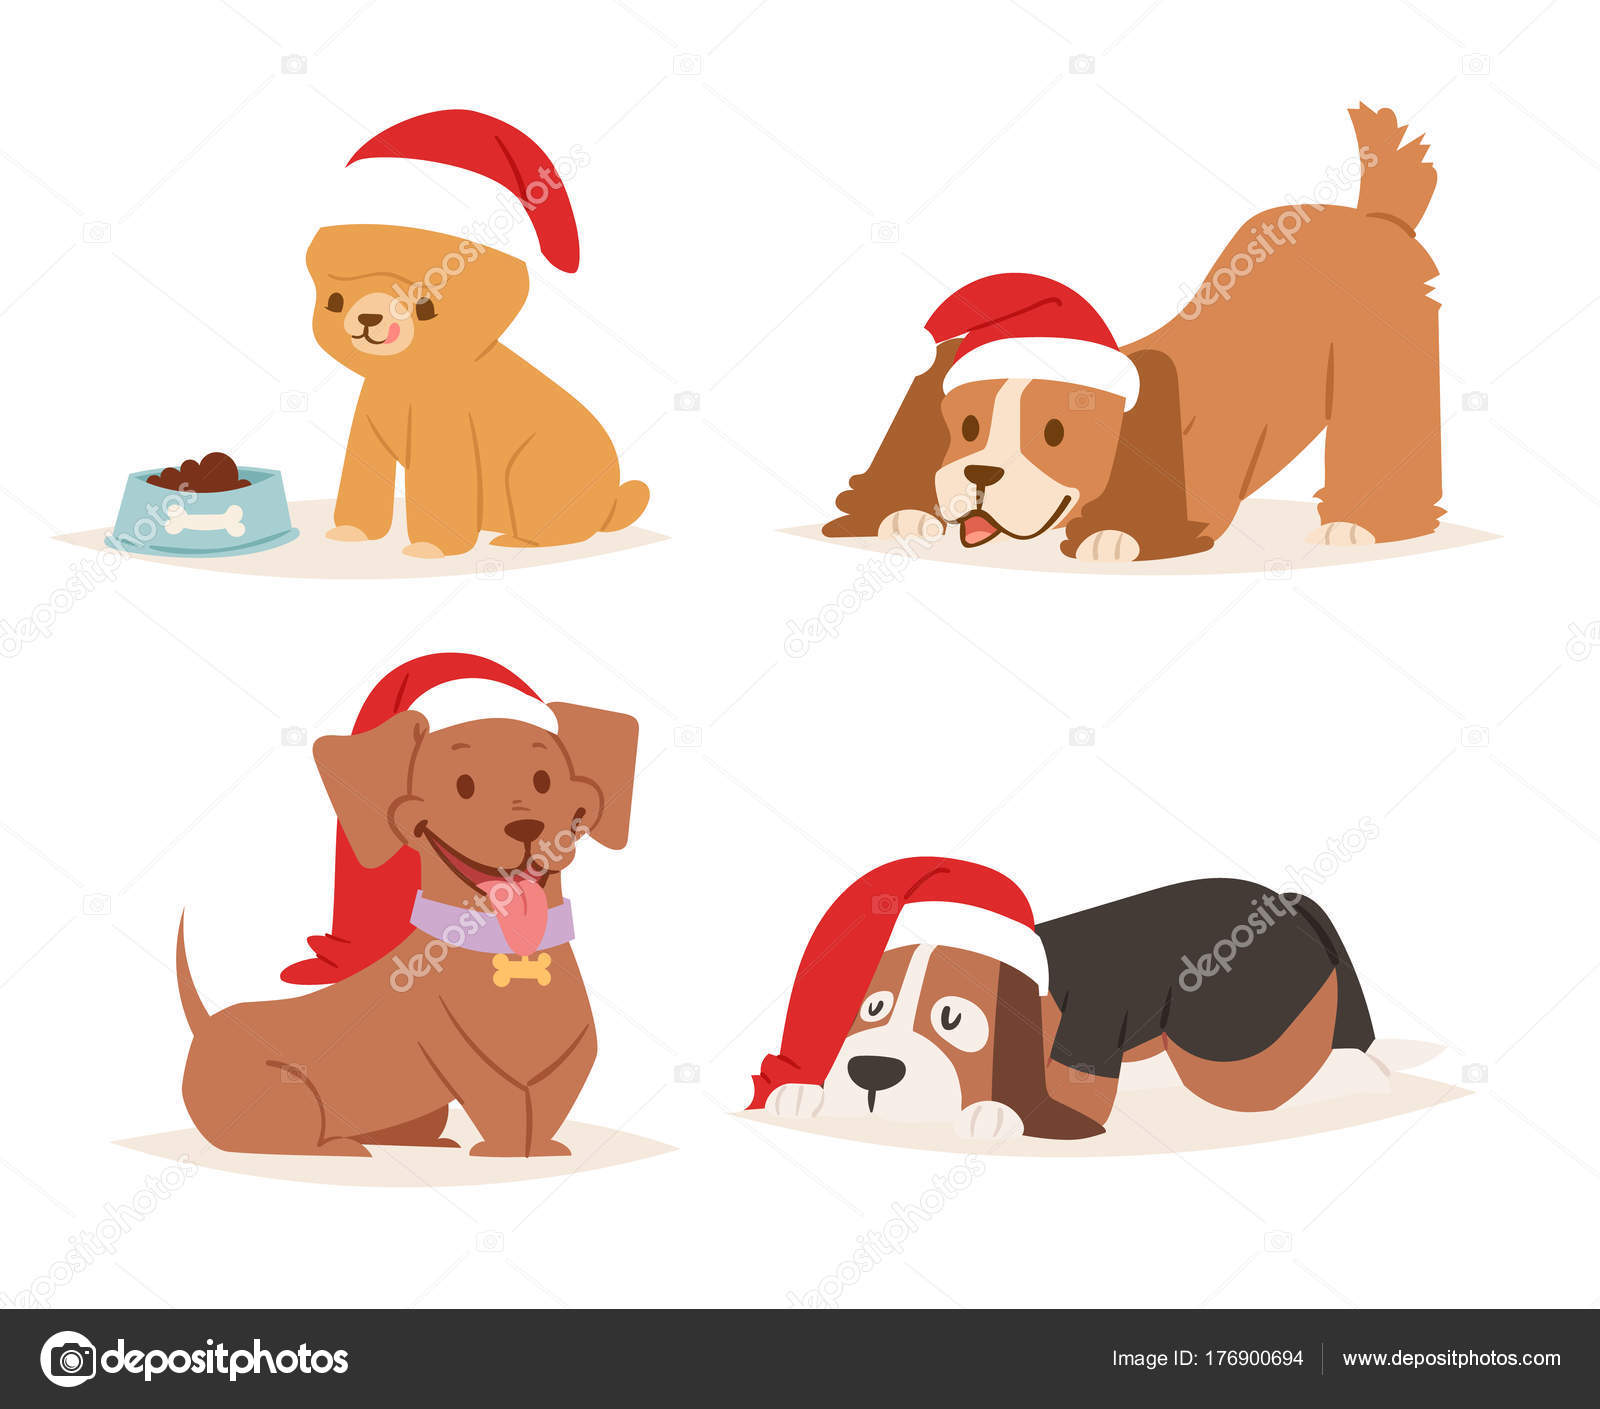 Christmas Dog Vector Cute Cartoon Puppy Characters Illustration Home Pets Doggy Different Xmas Celebrate Poses In Santa Red Hat Stock Vector C Vectorshow 176900694